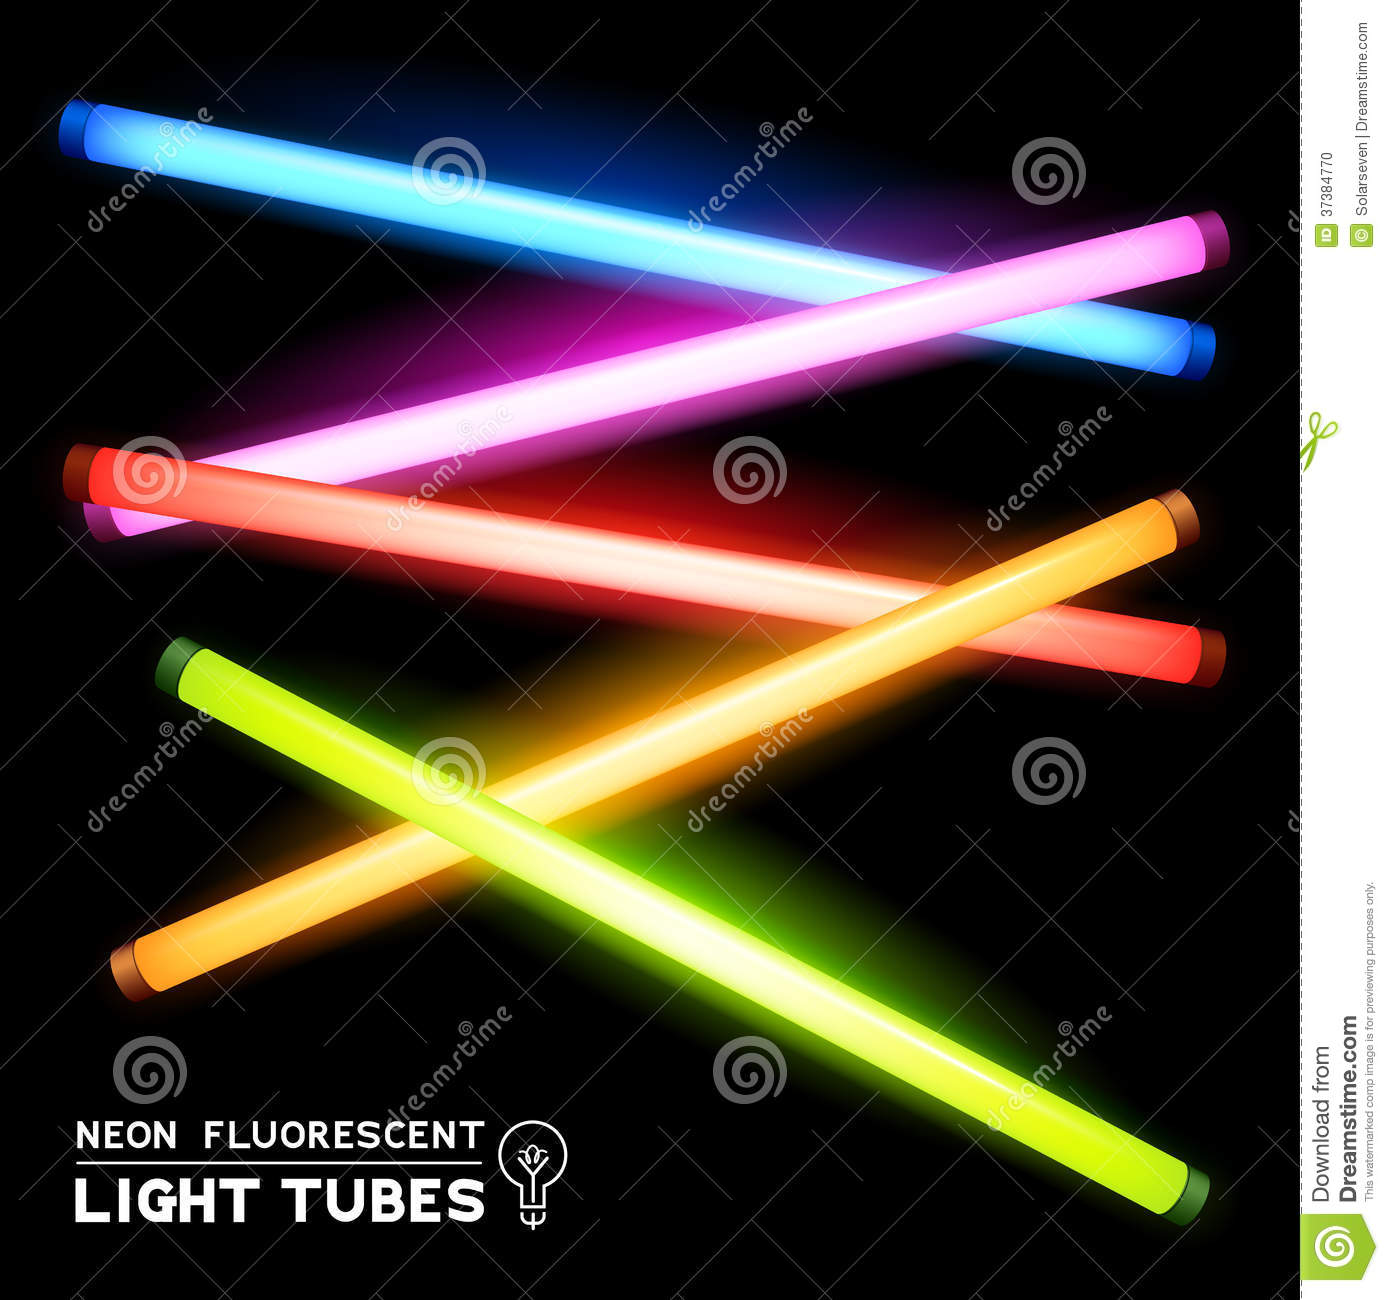 neon fluorescent light tubes stock photo image 37384770. Black Bedroom Furniture Sets. Home Design Ideas